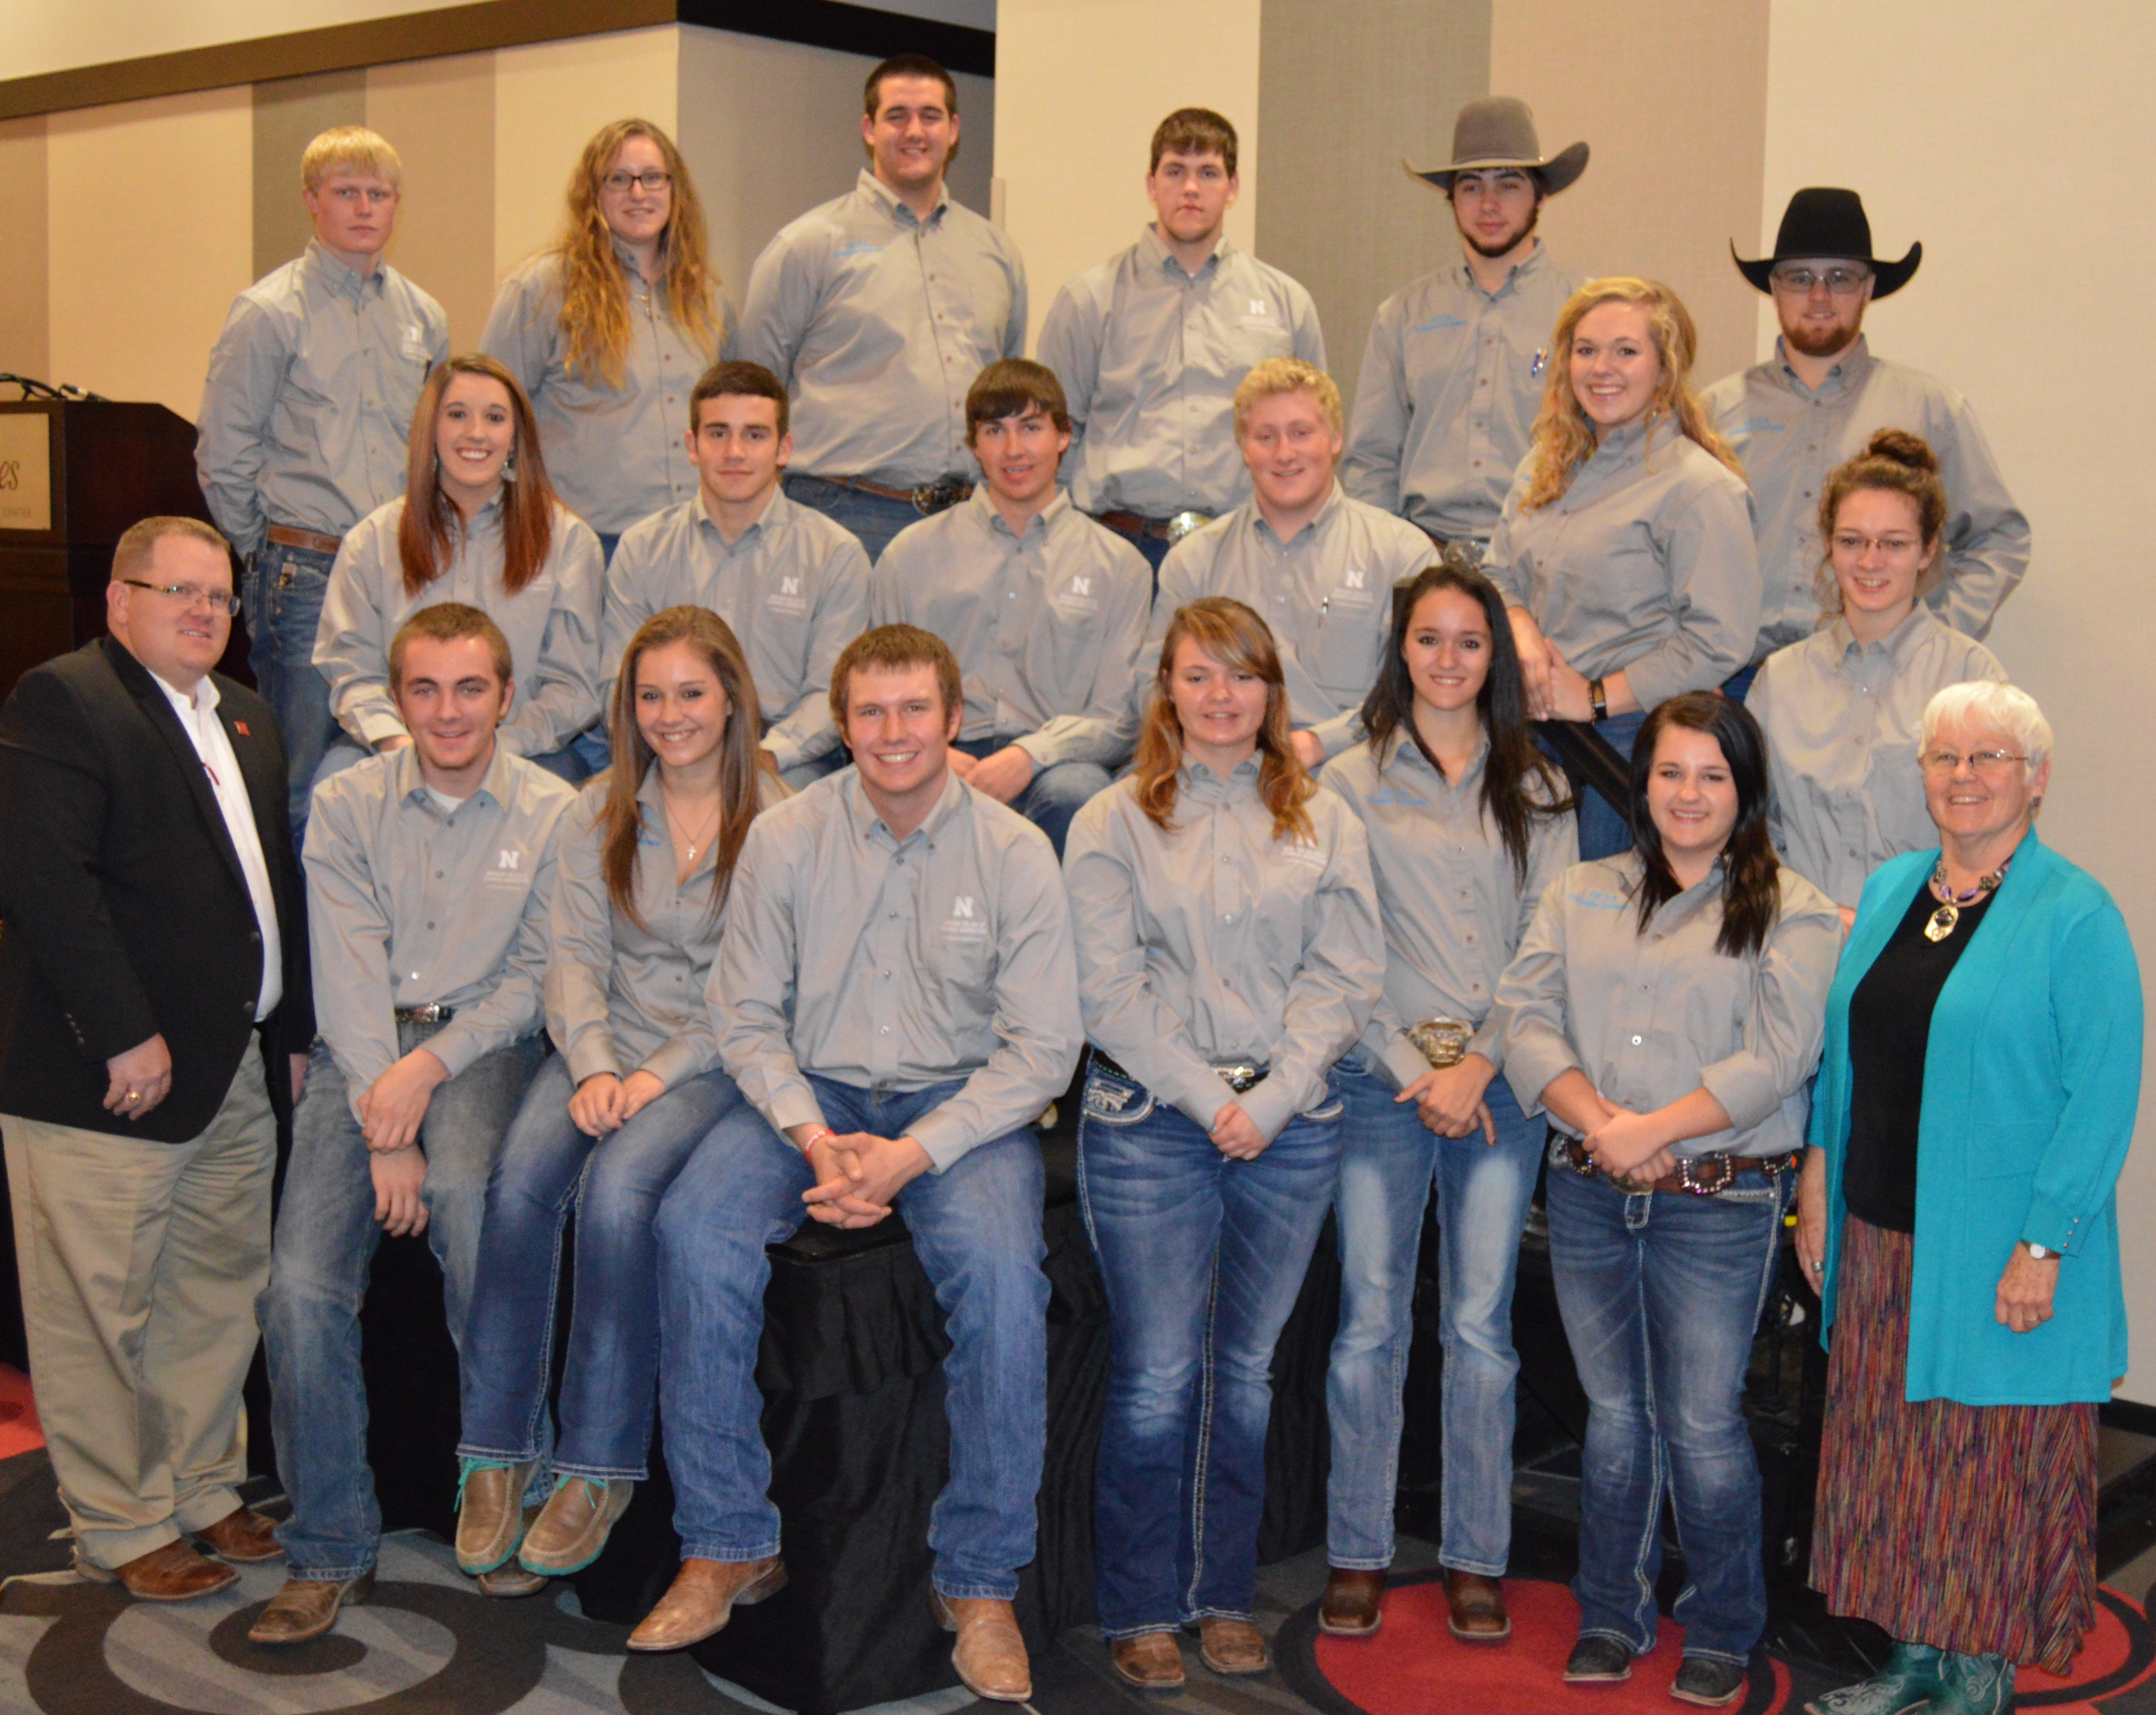 Nebraska College of Technical Agriculture animal science students and NCTA Collegiate Cattlemen attended the Nebraska Cattlemen convention with professors, Dr. Doug Smith (left) and Terri Jo Bek (right). The NC Foundation recognized the college and awarded industry awards to Smith and Bek. (Crawford/NCTA News Photo)